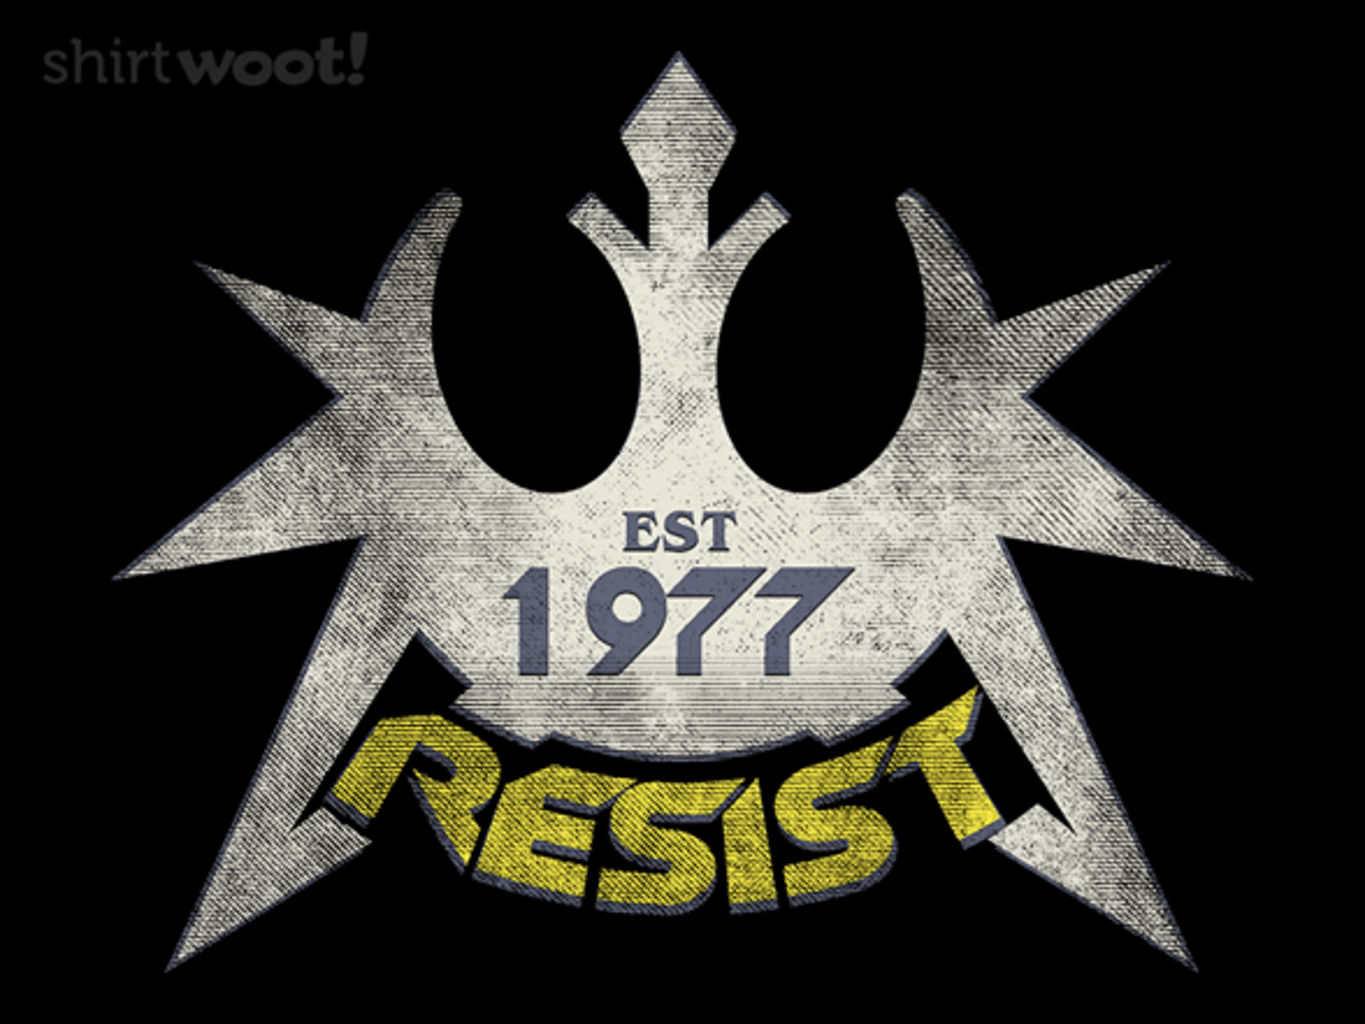 Woot!: Resist 77 - $15.00 + Free shipping